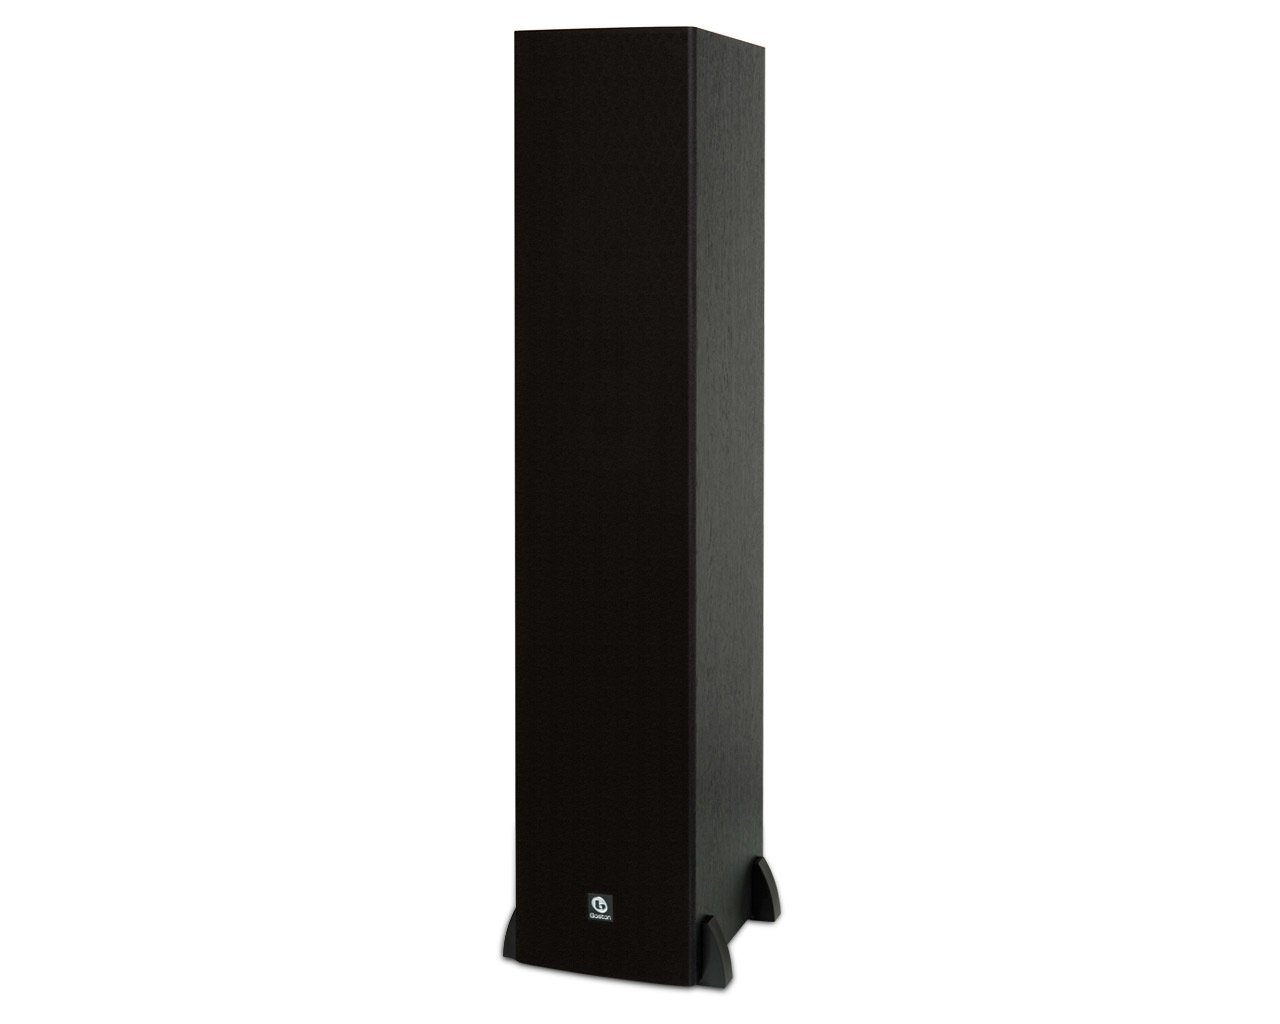 Boston Acoustics Classic II CS260 Floor Standing Speakers